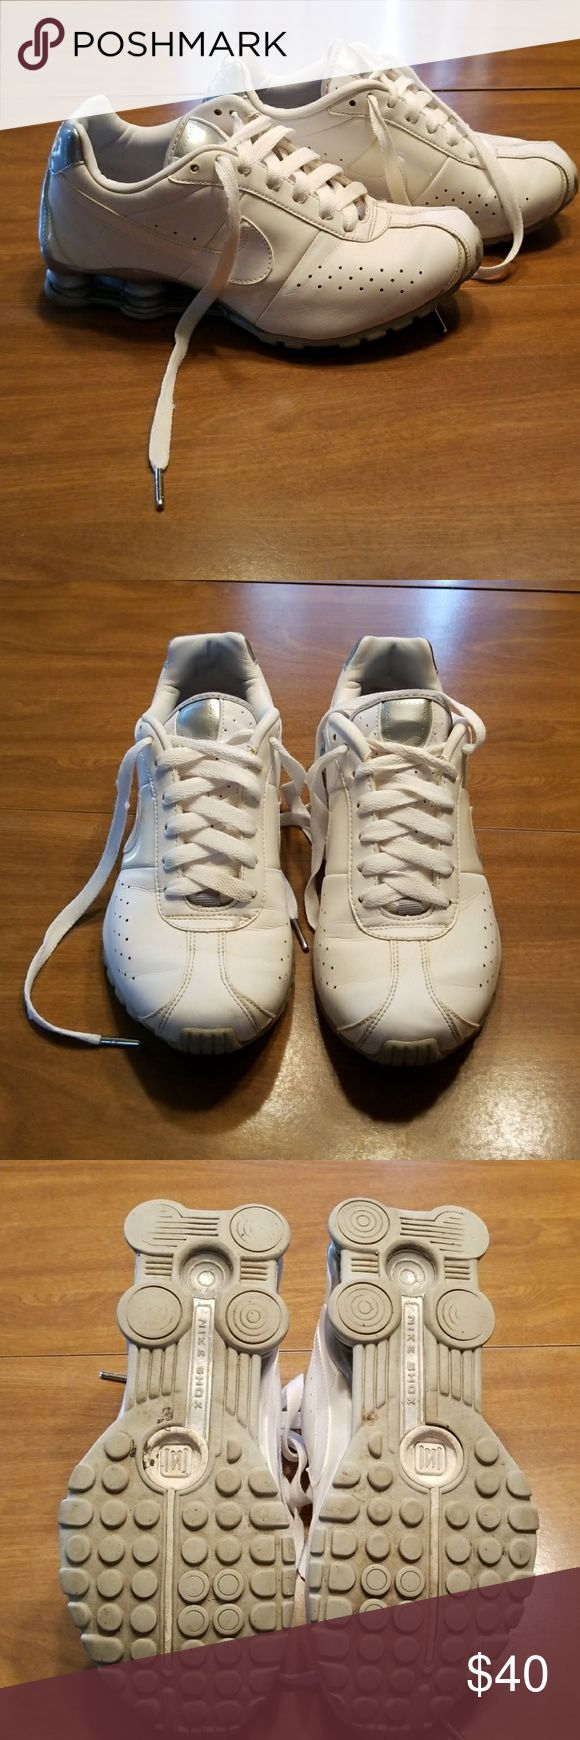 White and silver Nike shox White and silver Nike shox classic, average amount of wear, but still have a lot of life left, have been cleaned and ready to ship Nike Shoes Sneakers